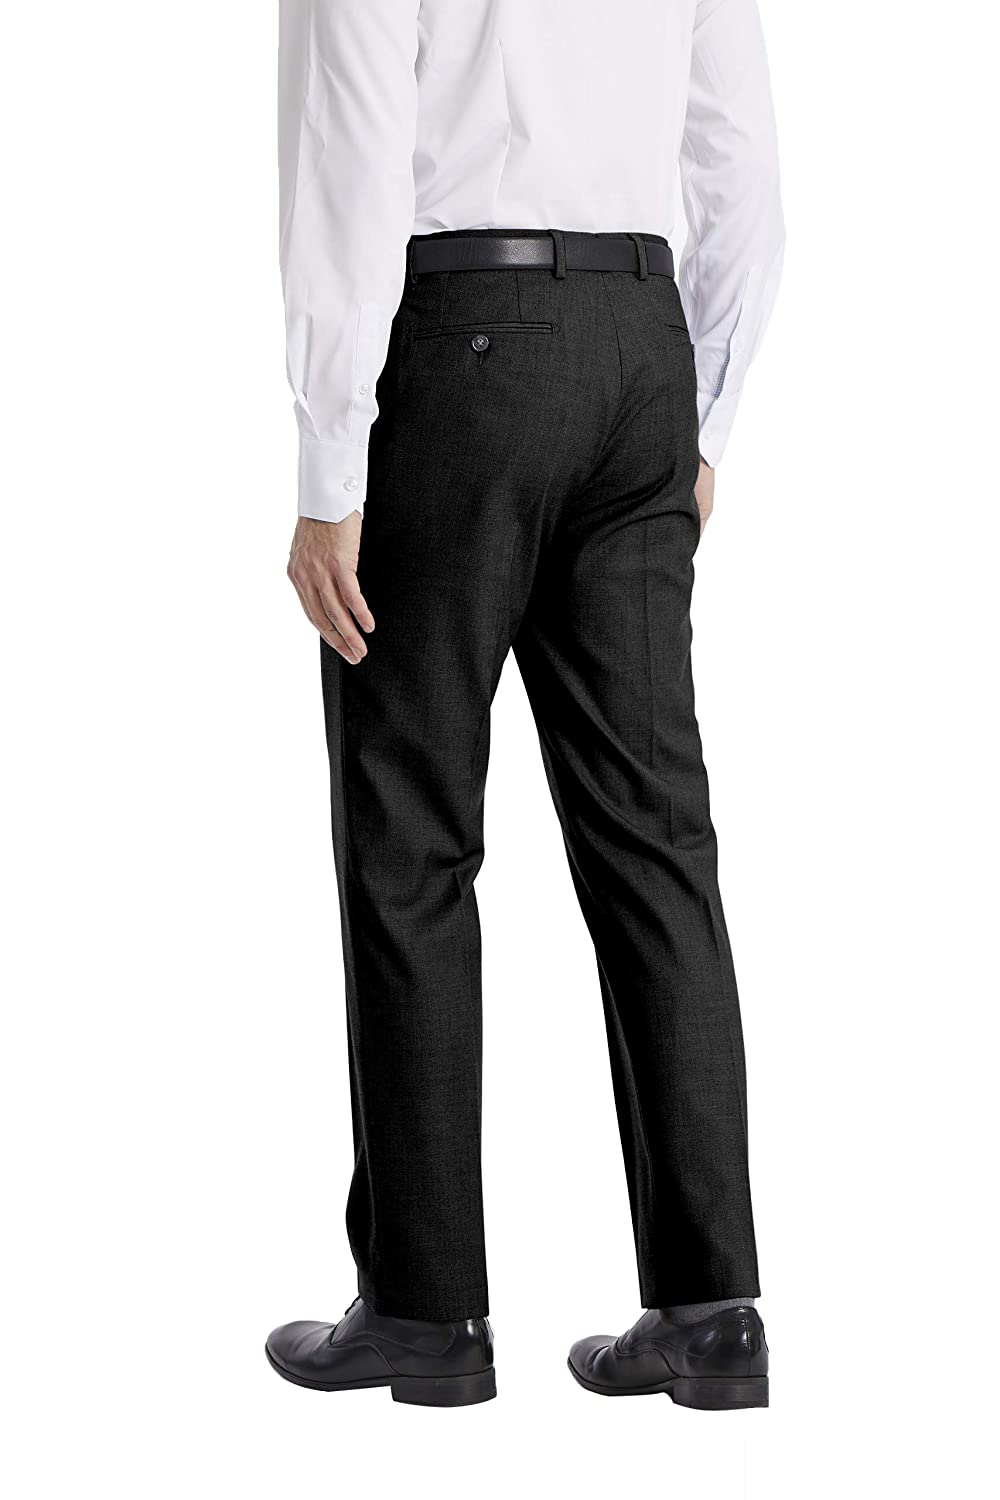 1a9262132 Calvin Klein Men's X-fit Slim Stretch Suit Separate (Blazer and Pant) at  Amazon Men's Clothing store: